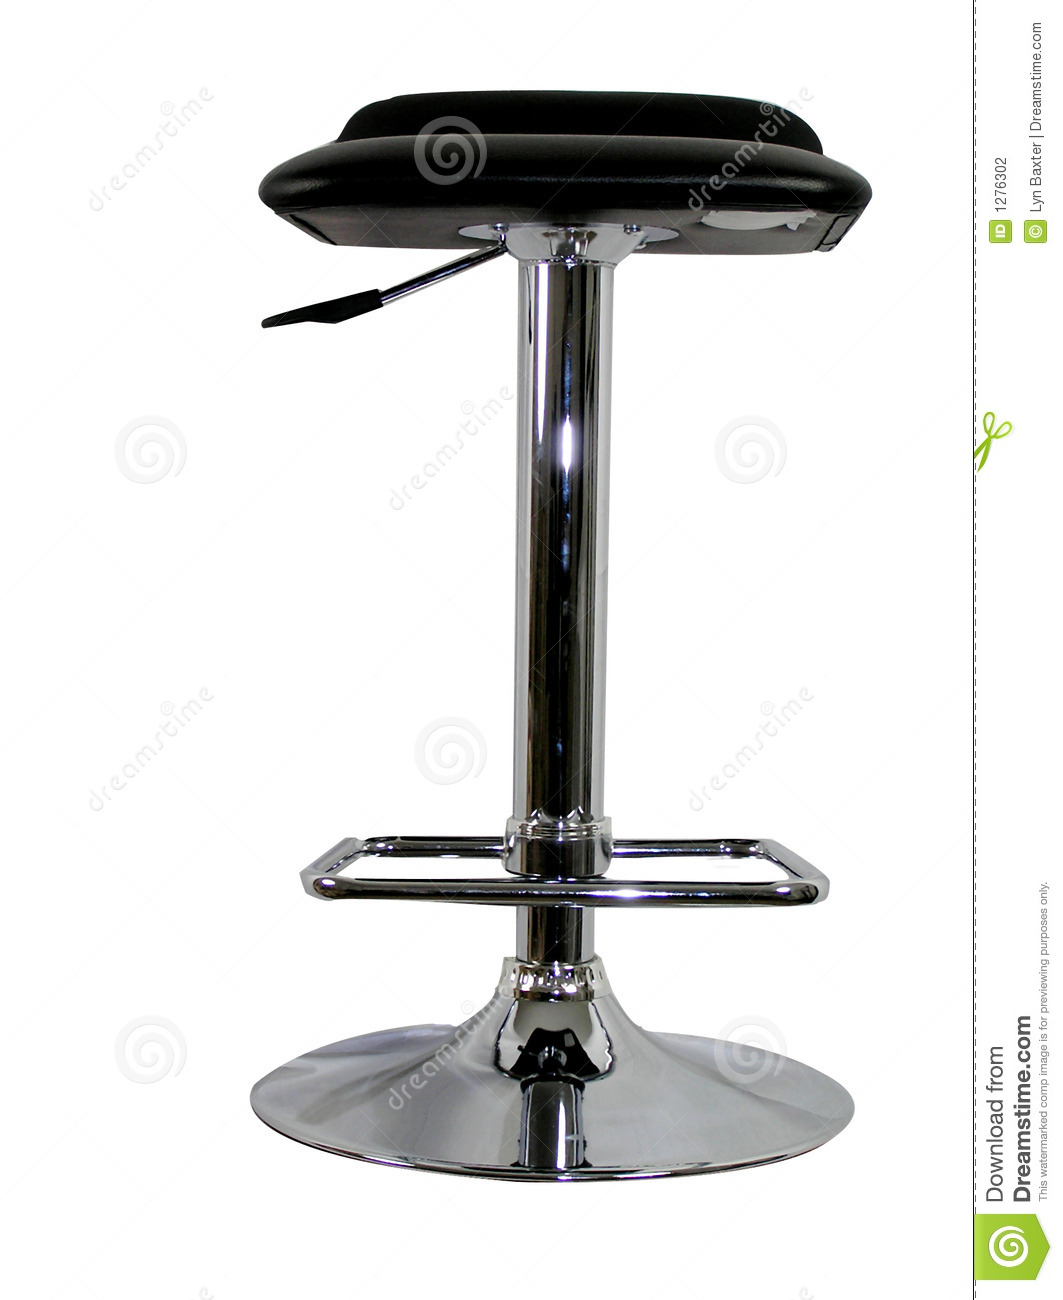 Bar Stool Stock Photography Image 1276302 : bar stool 1276302 from www.dreamstime.com size 1063 x 1300 jpeg 160kB